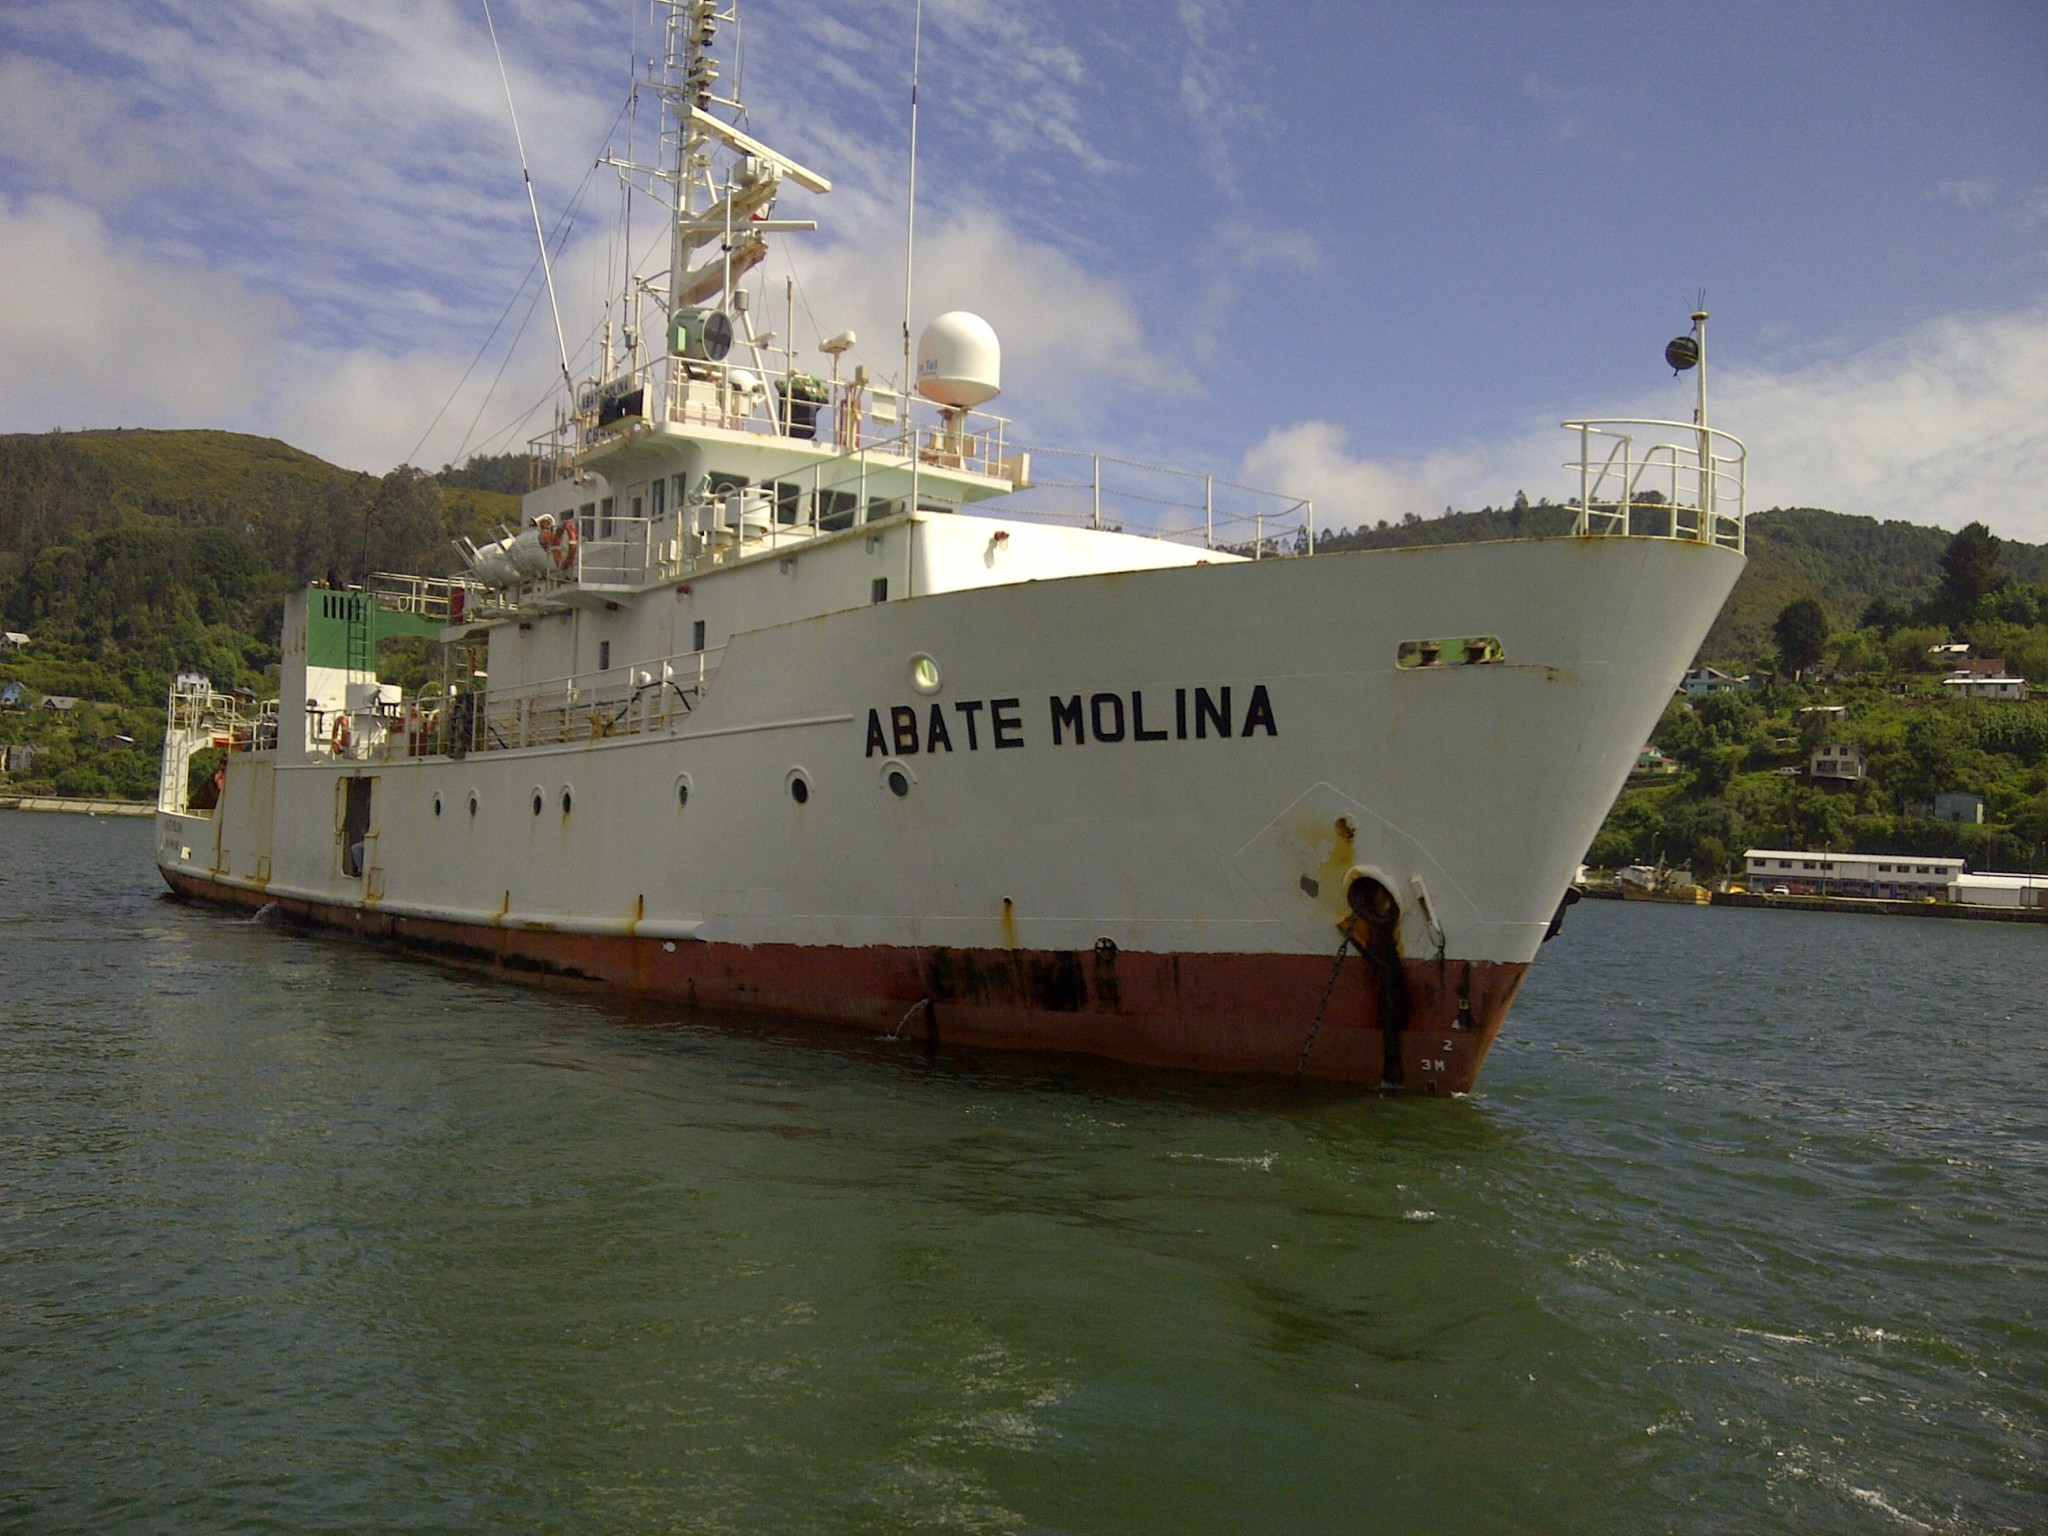 IFOP's Abate Molina Scientific Ship sailed